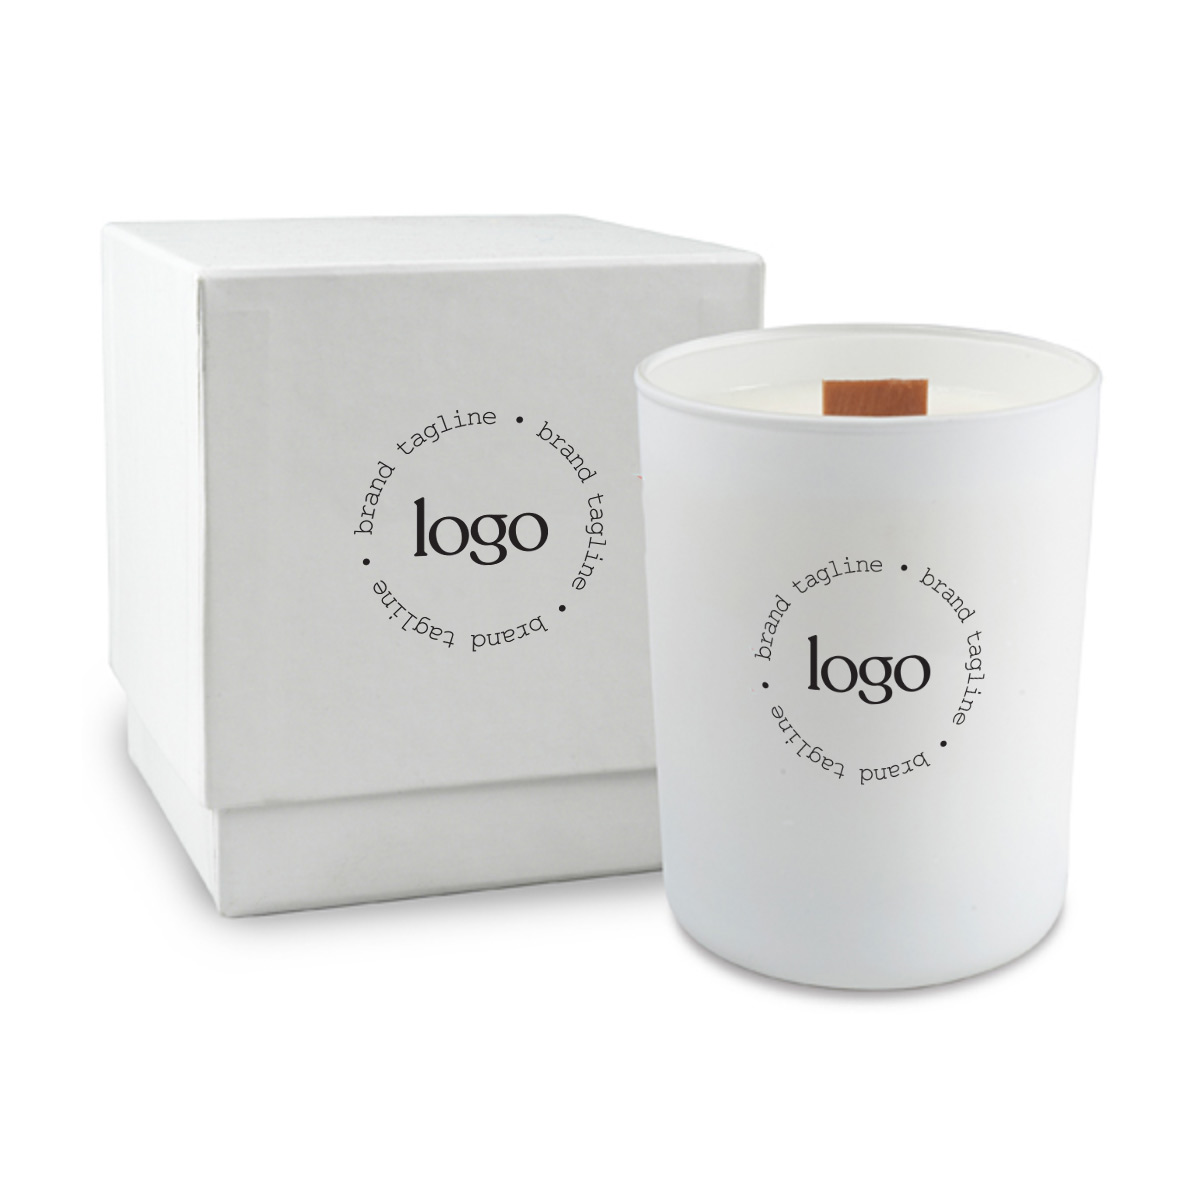 243699 nouveau soy candle one color imprint on candle and box